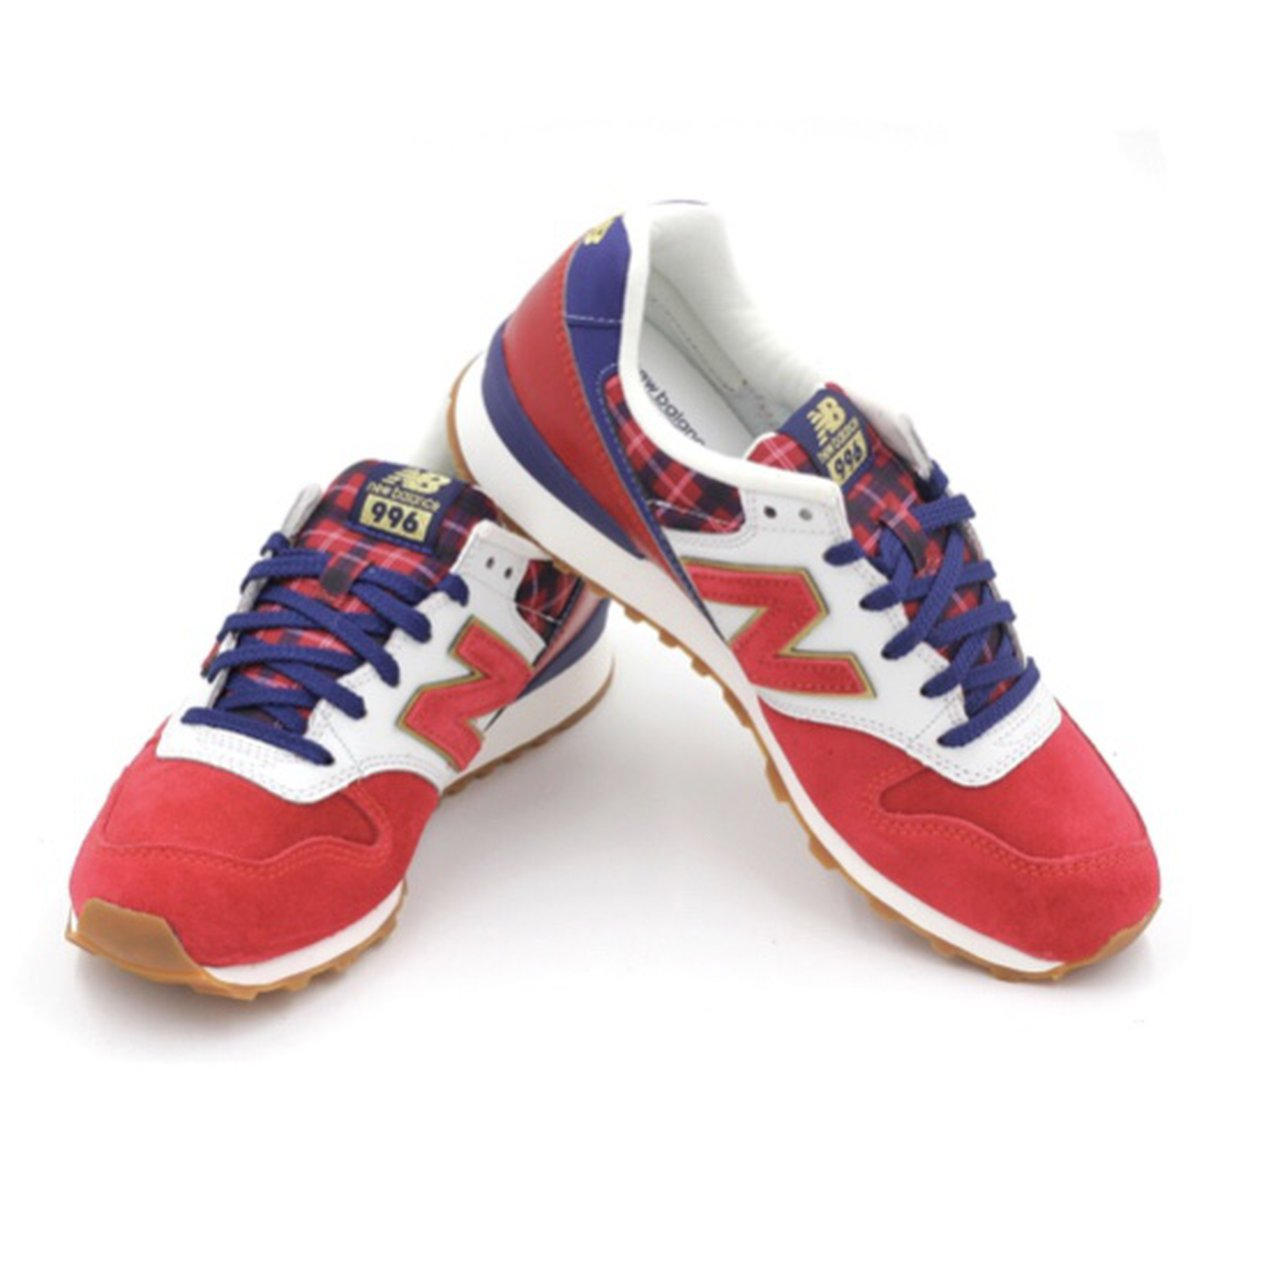 new balance 996 red white blue